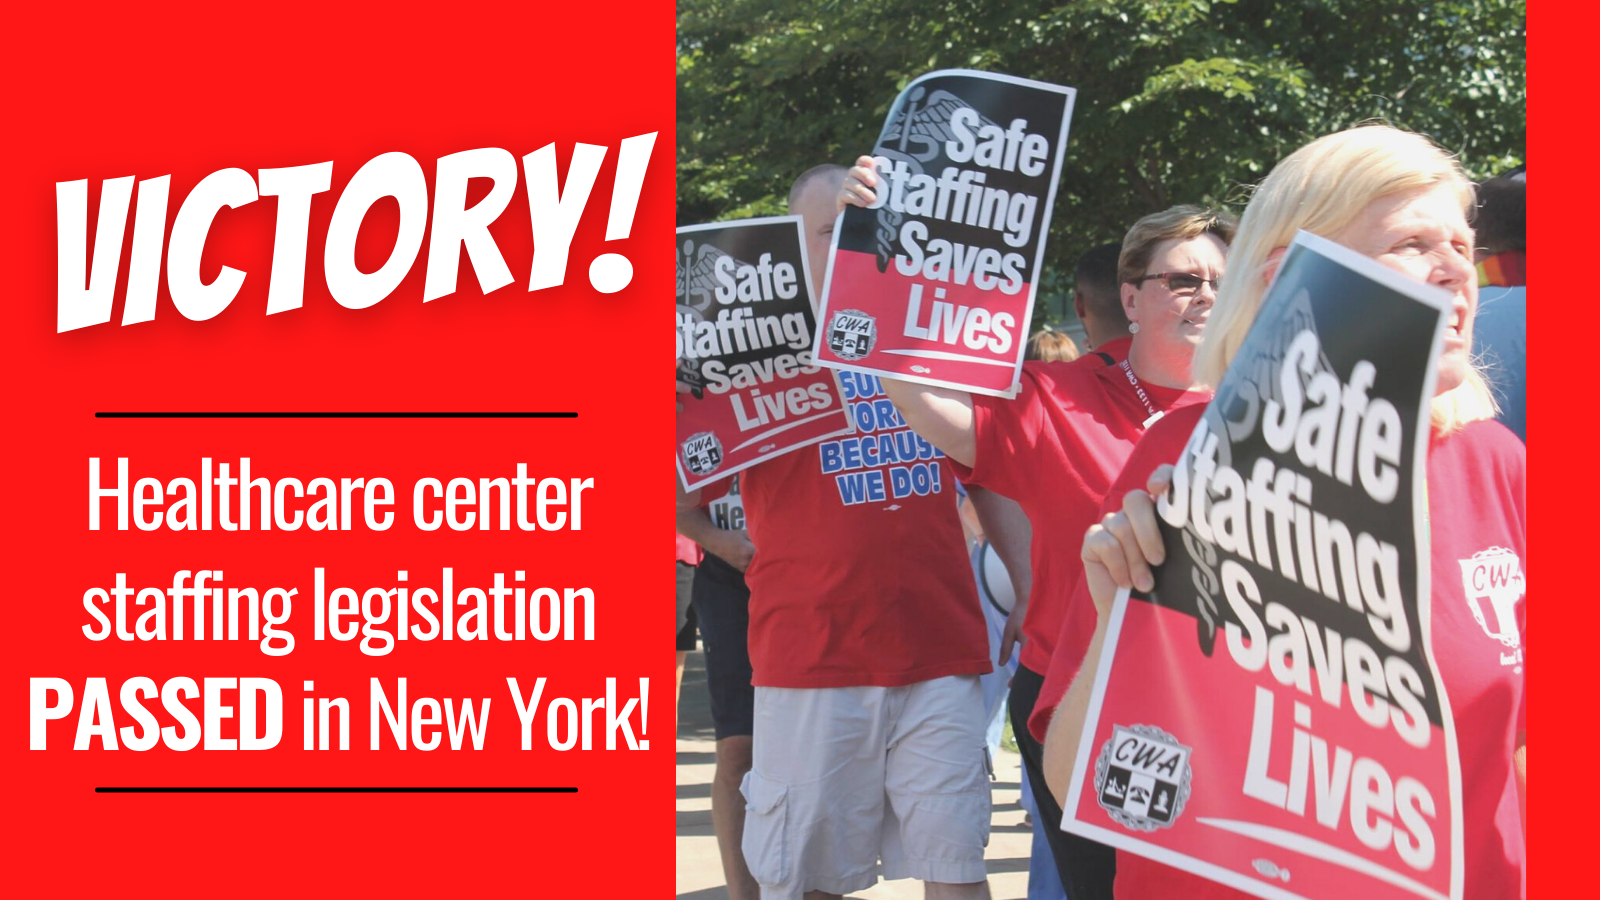 Safe Staffing Victory graphic with rally photo and Safe Staffing Saves Lives signs